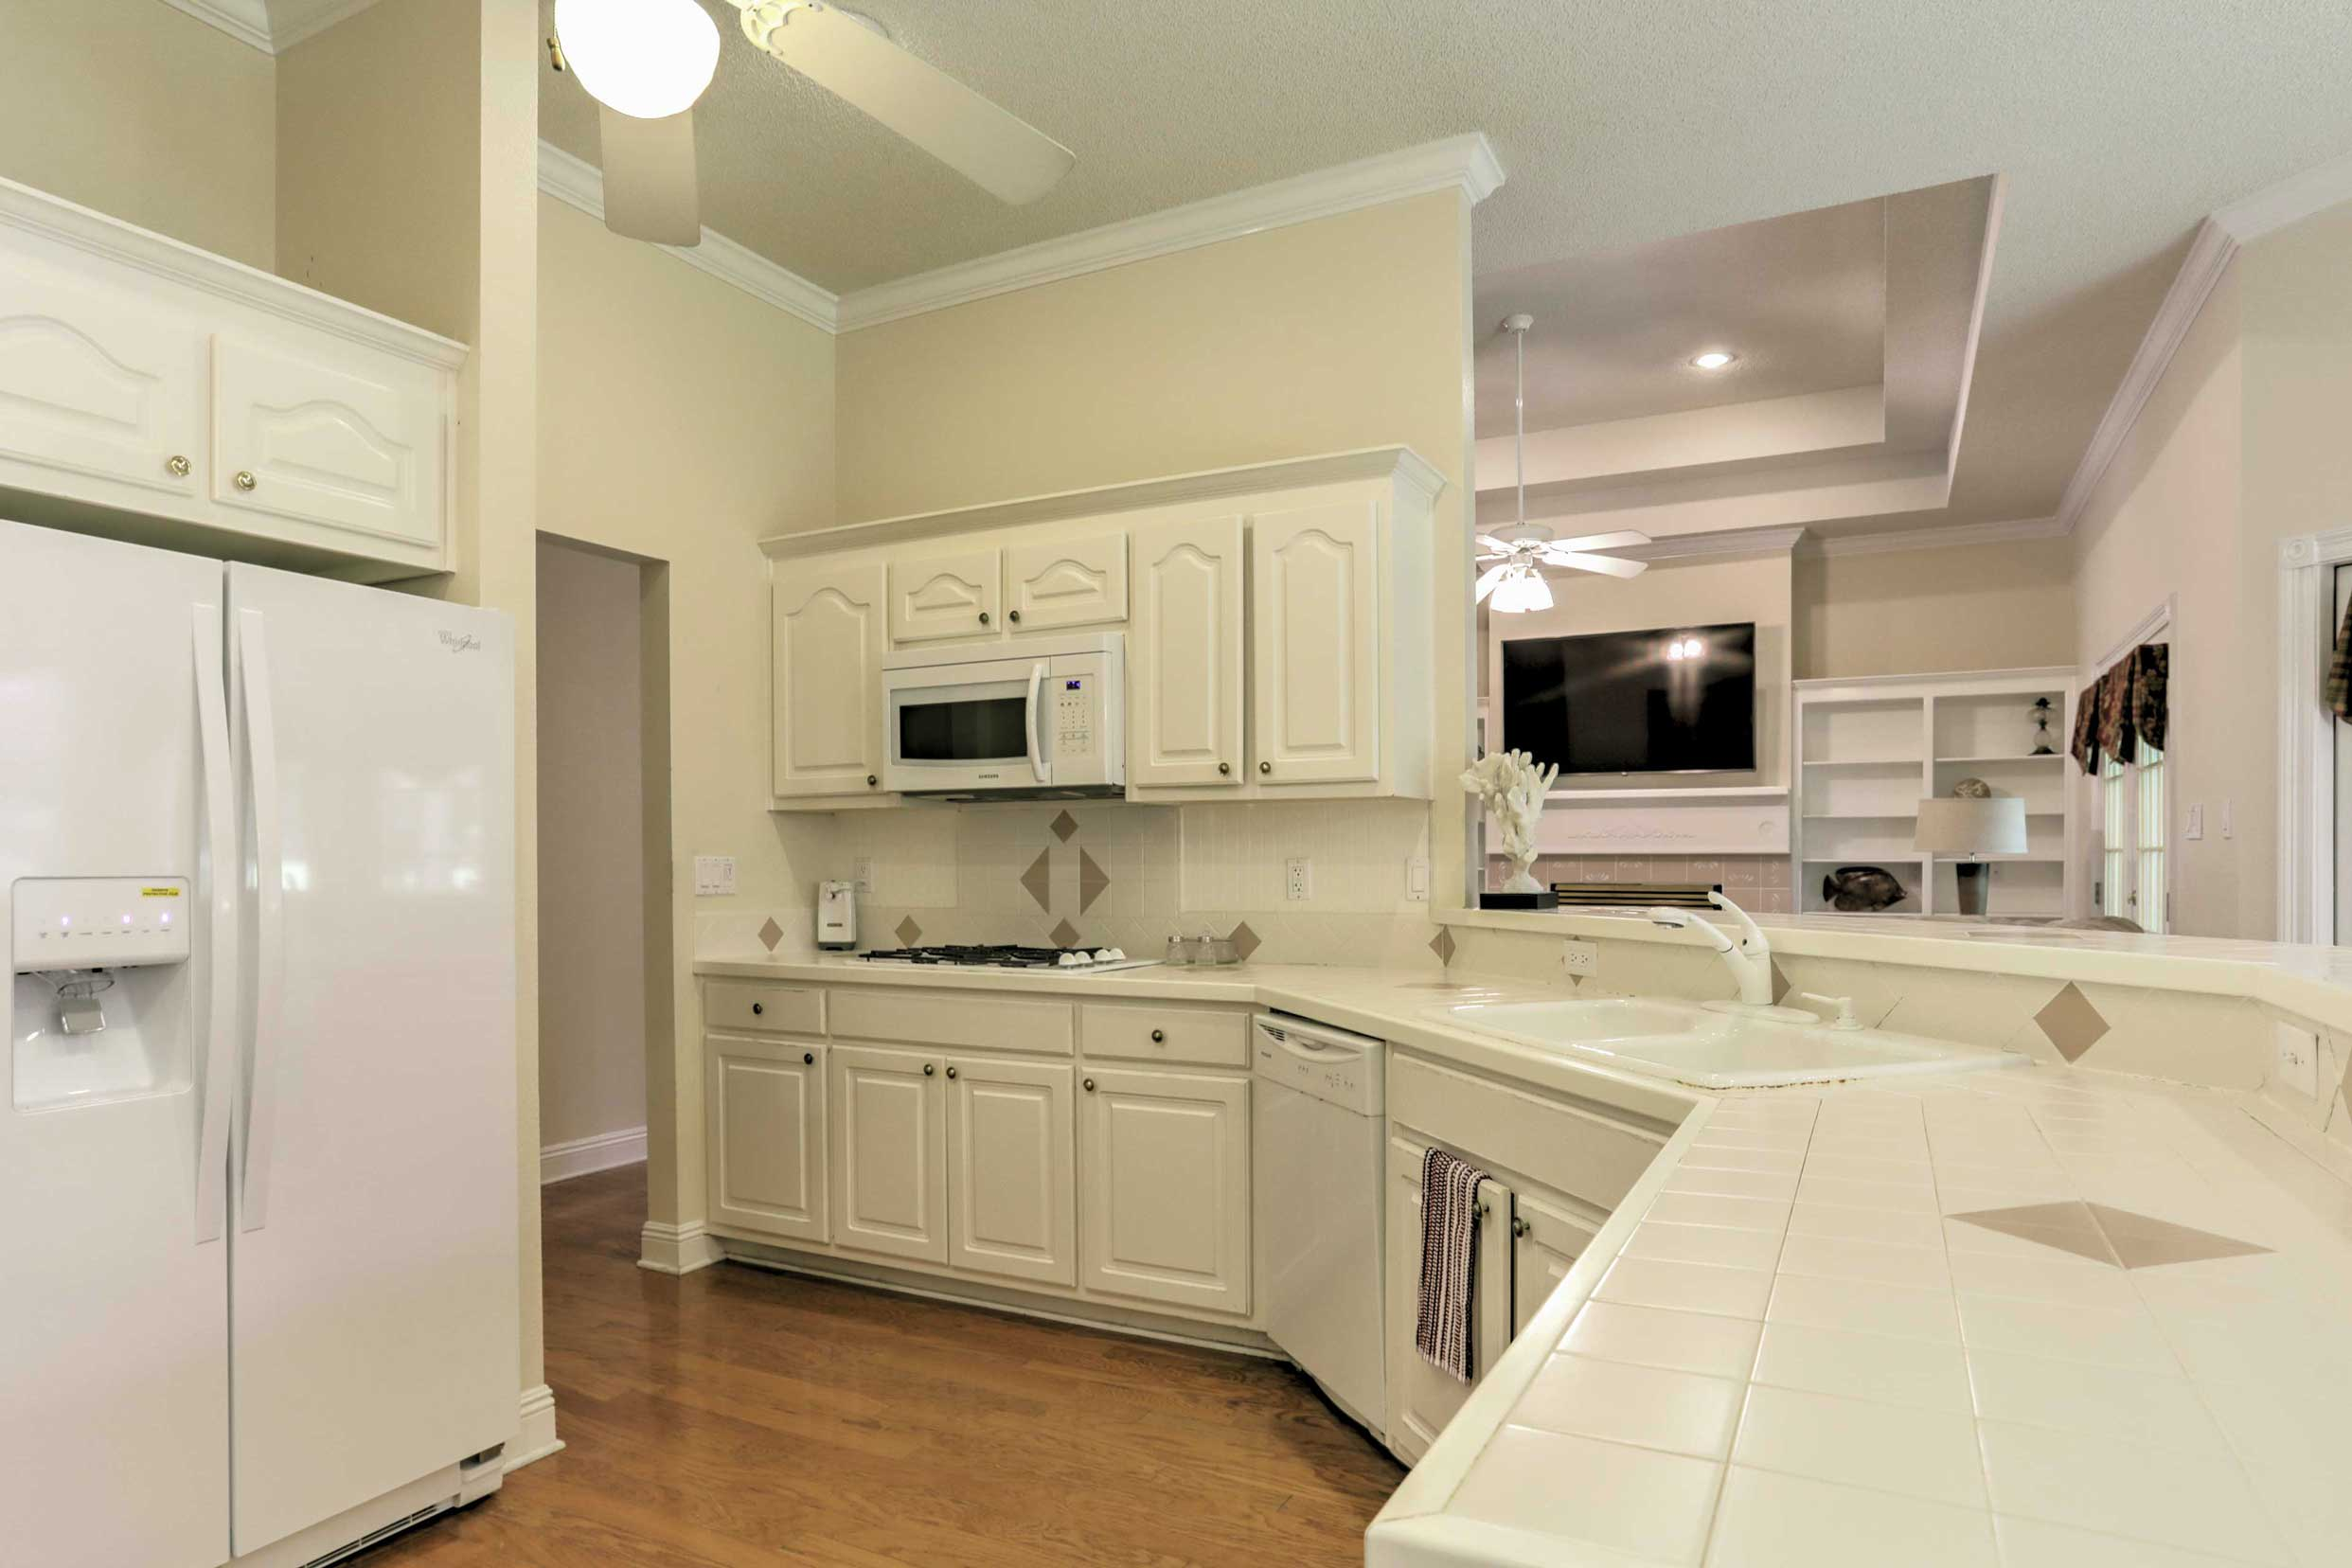 Utilize the sleek, white fully equipped kitchen to prepare home-cooked meals.